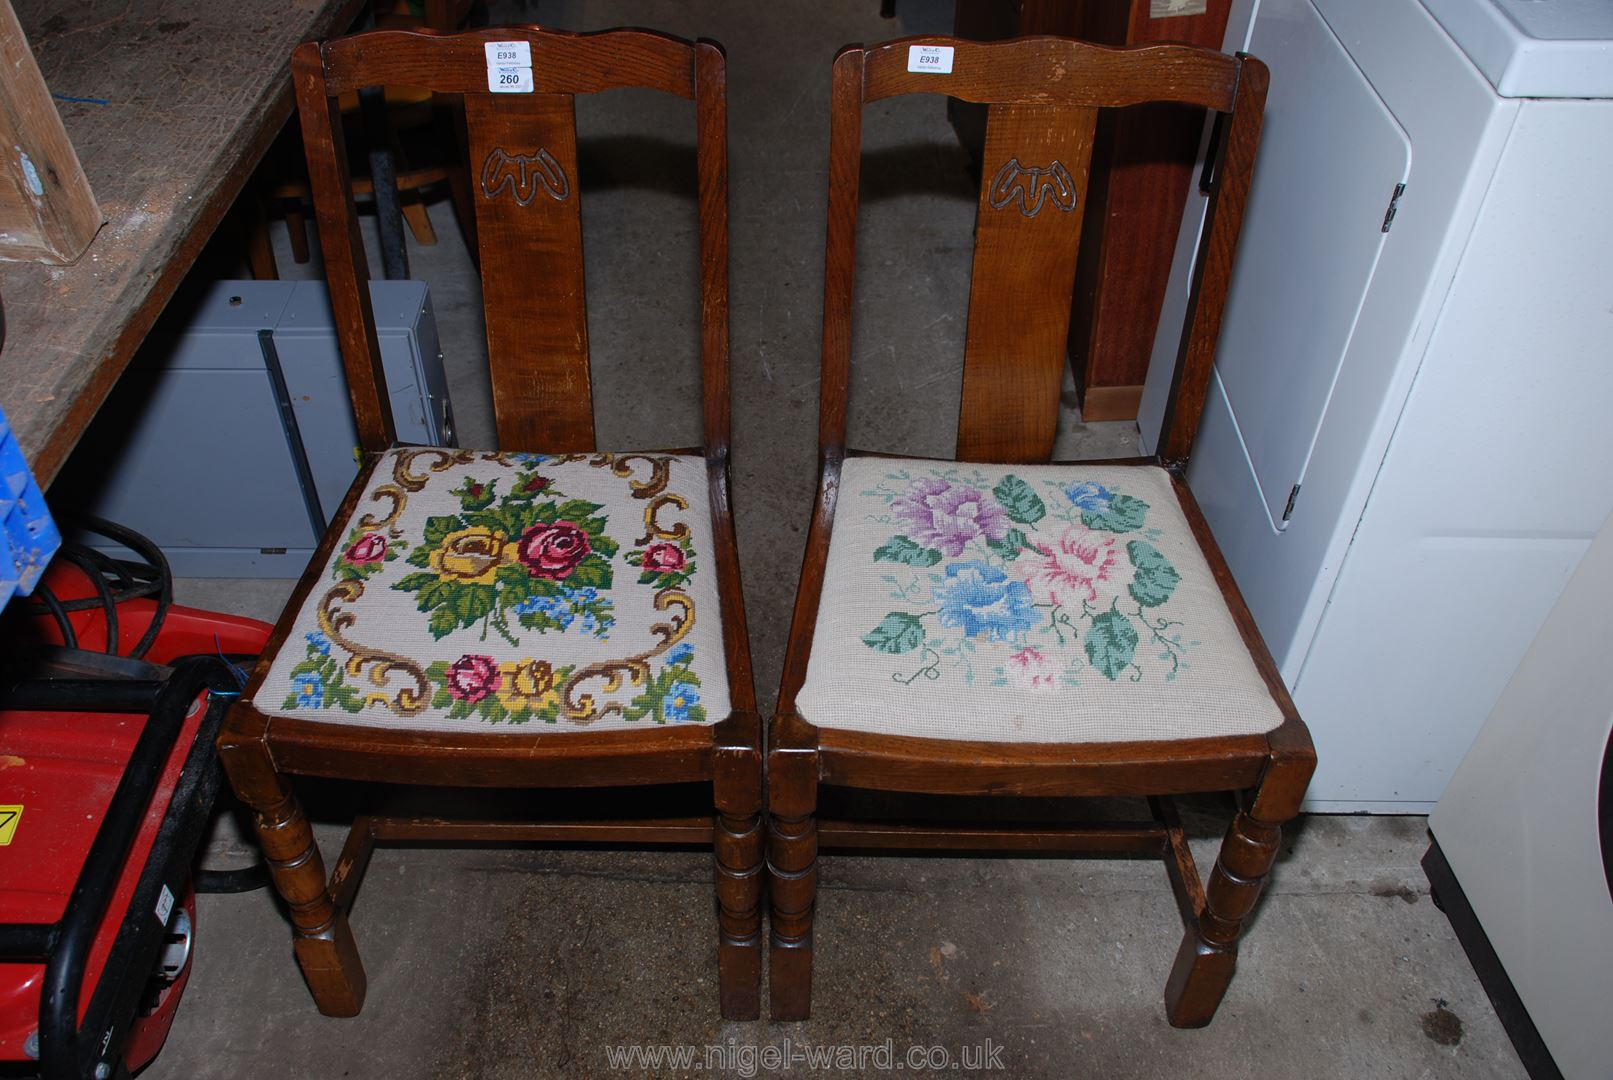 Pair of Oak dining chairs with floral tapestry covered seats.